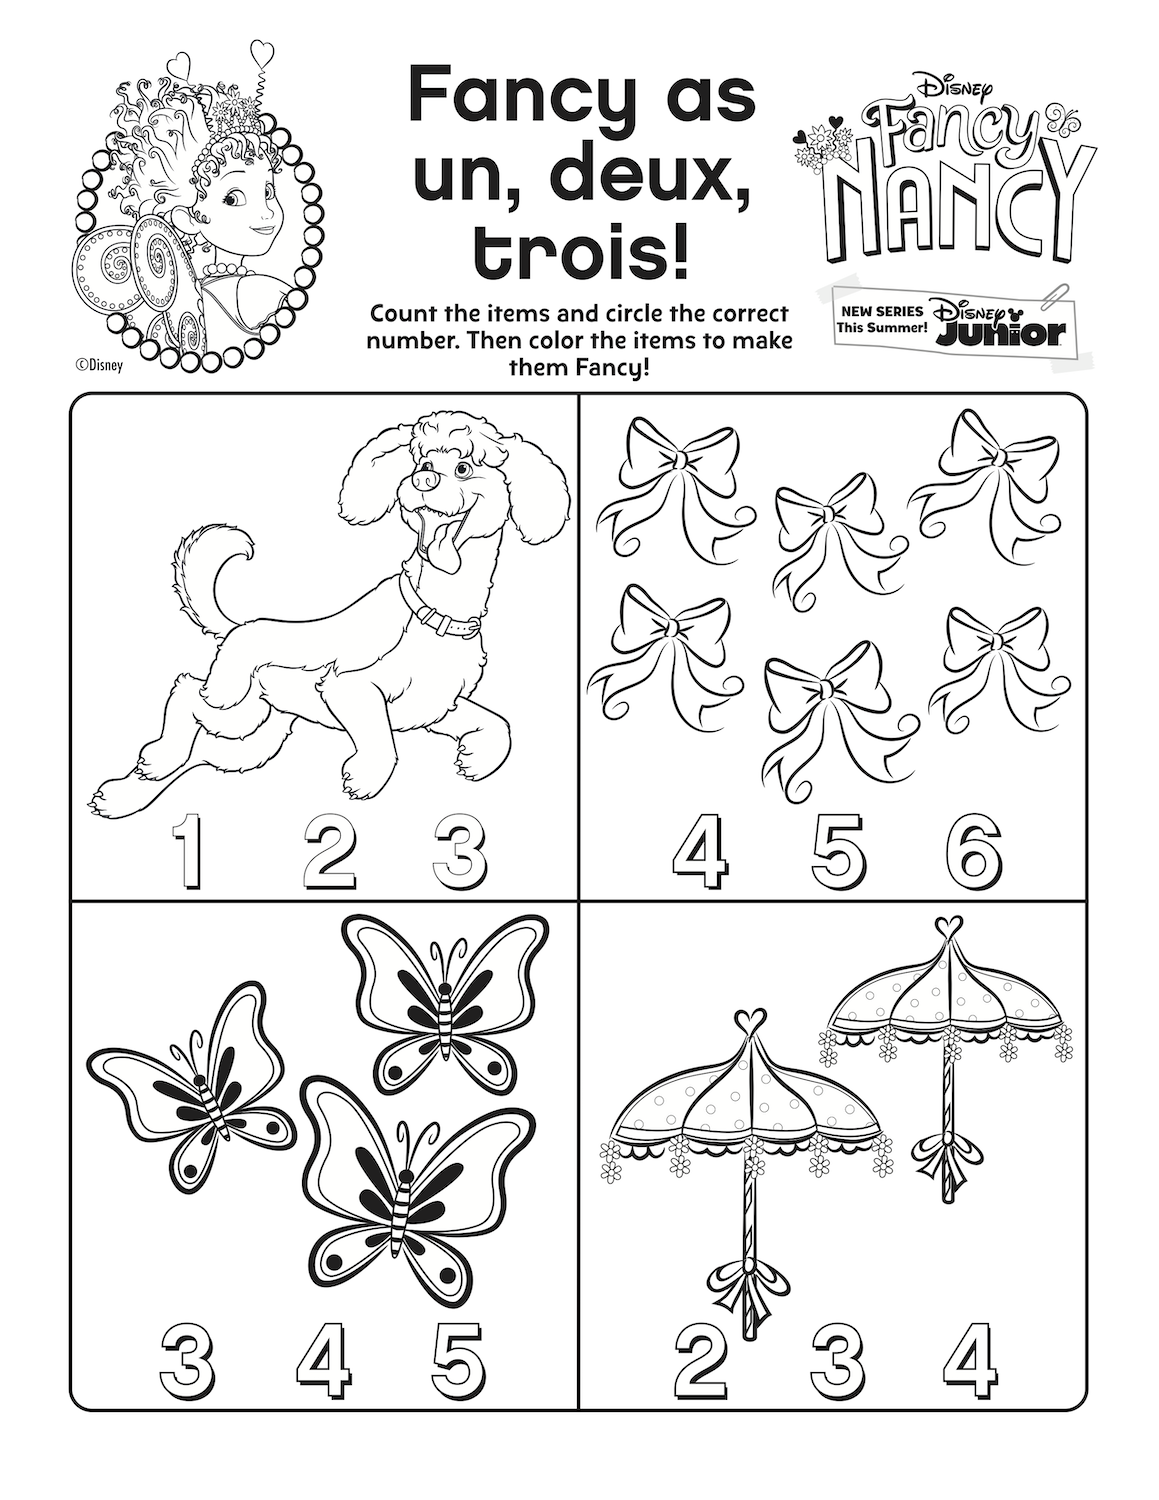 Fancy Nancy Printable Activity Come See Our Wonderful Page Of Free Fancy Nancy Printables Fancy Nancy Fancy Nancy Party Fancy Nancy Clancy [ 1500 x 1159 Pixel ]